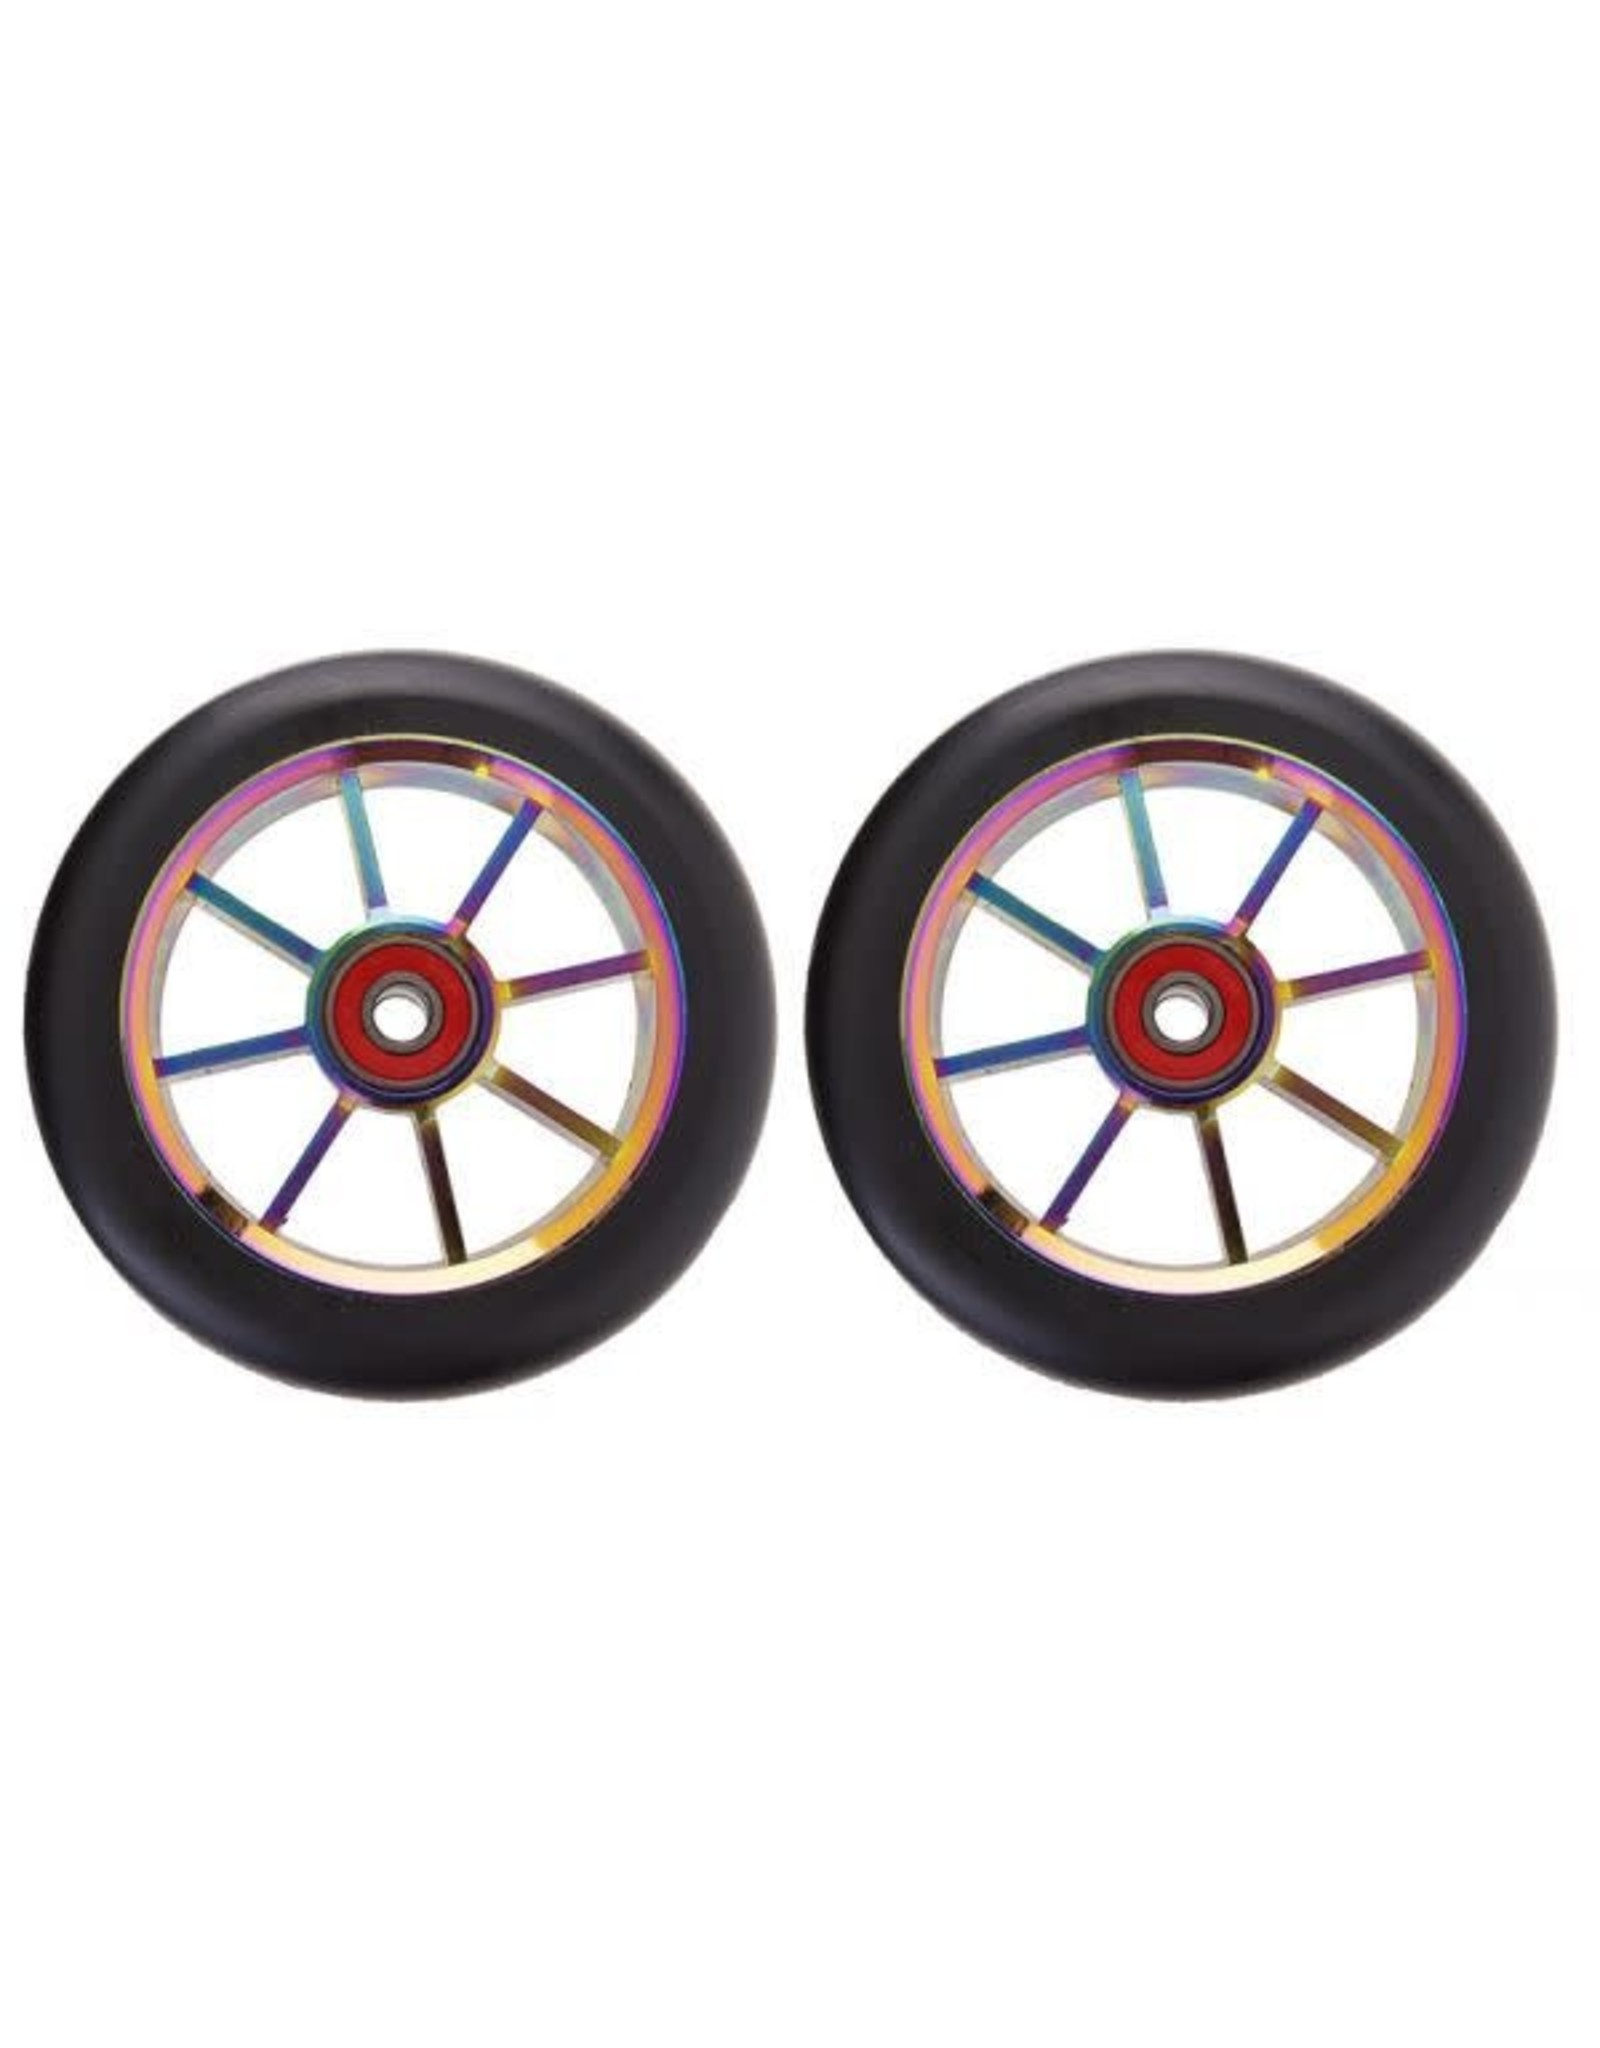 GRIT 8 SPOKE 110MM WHEEL PAIR